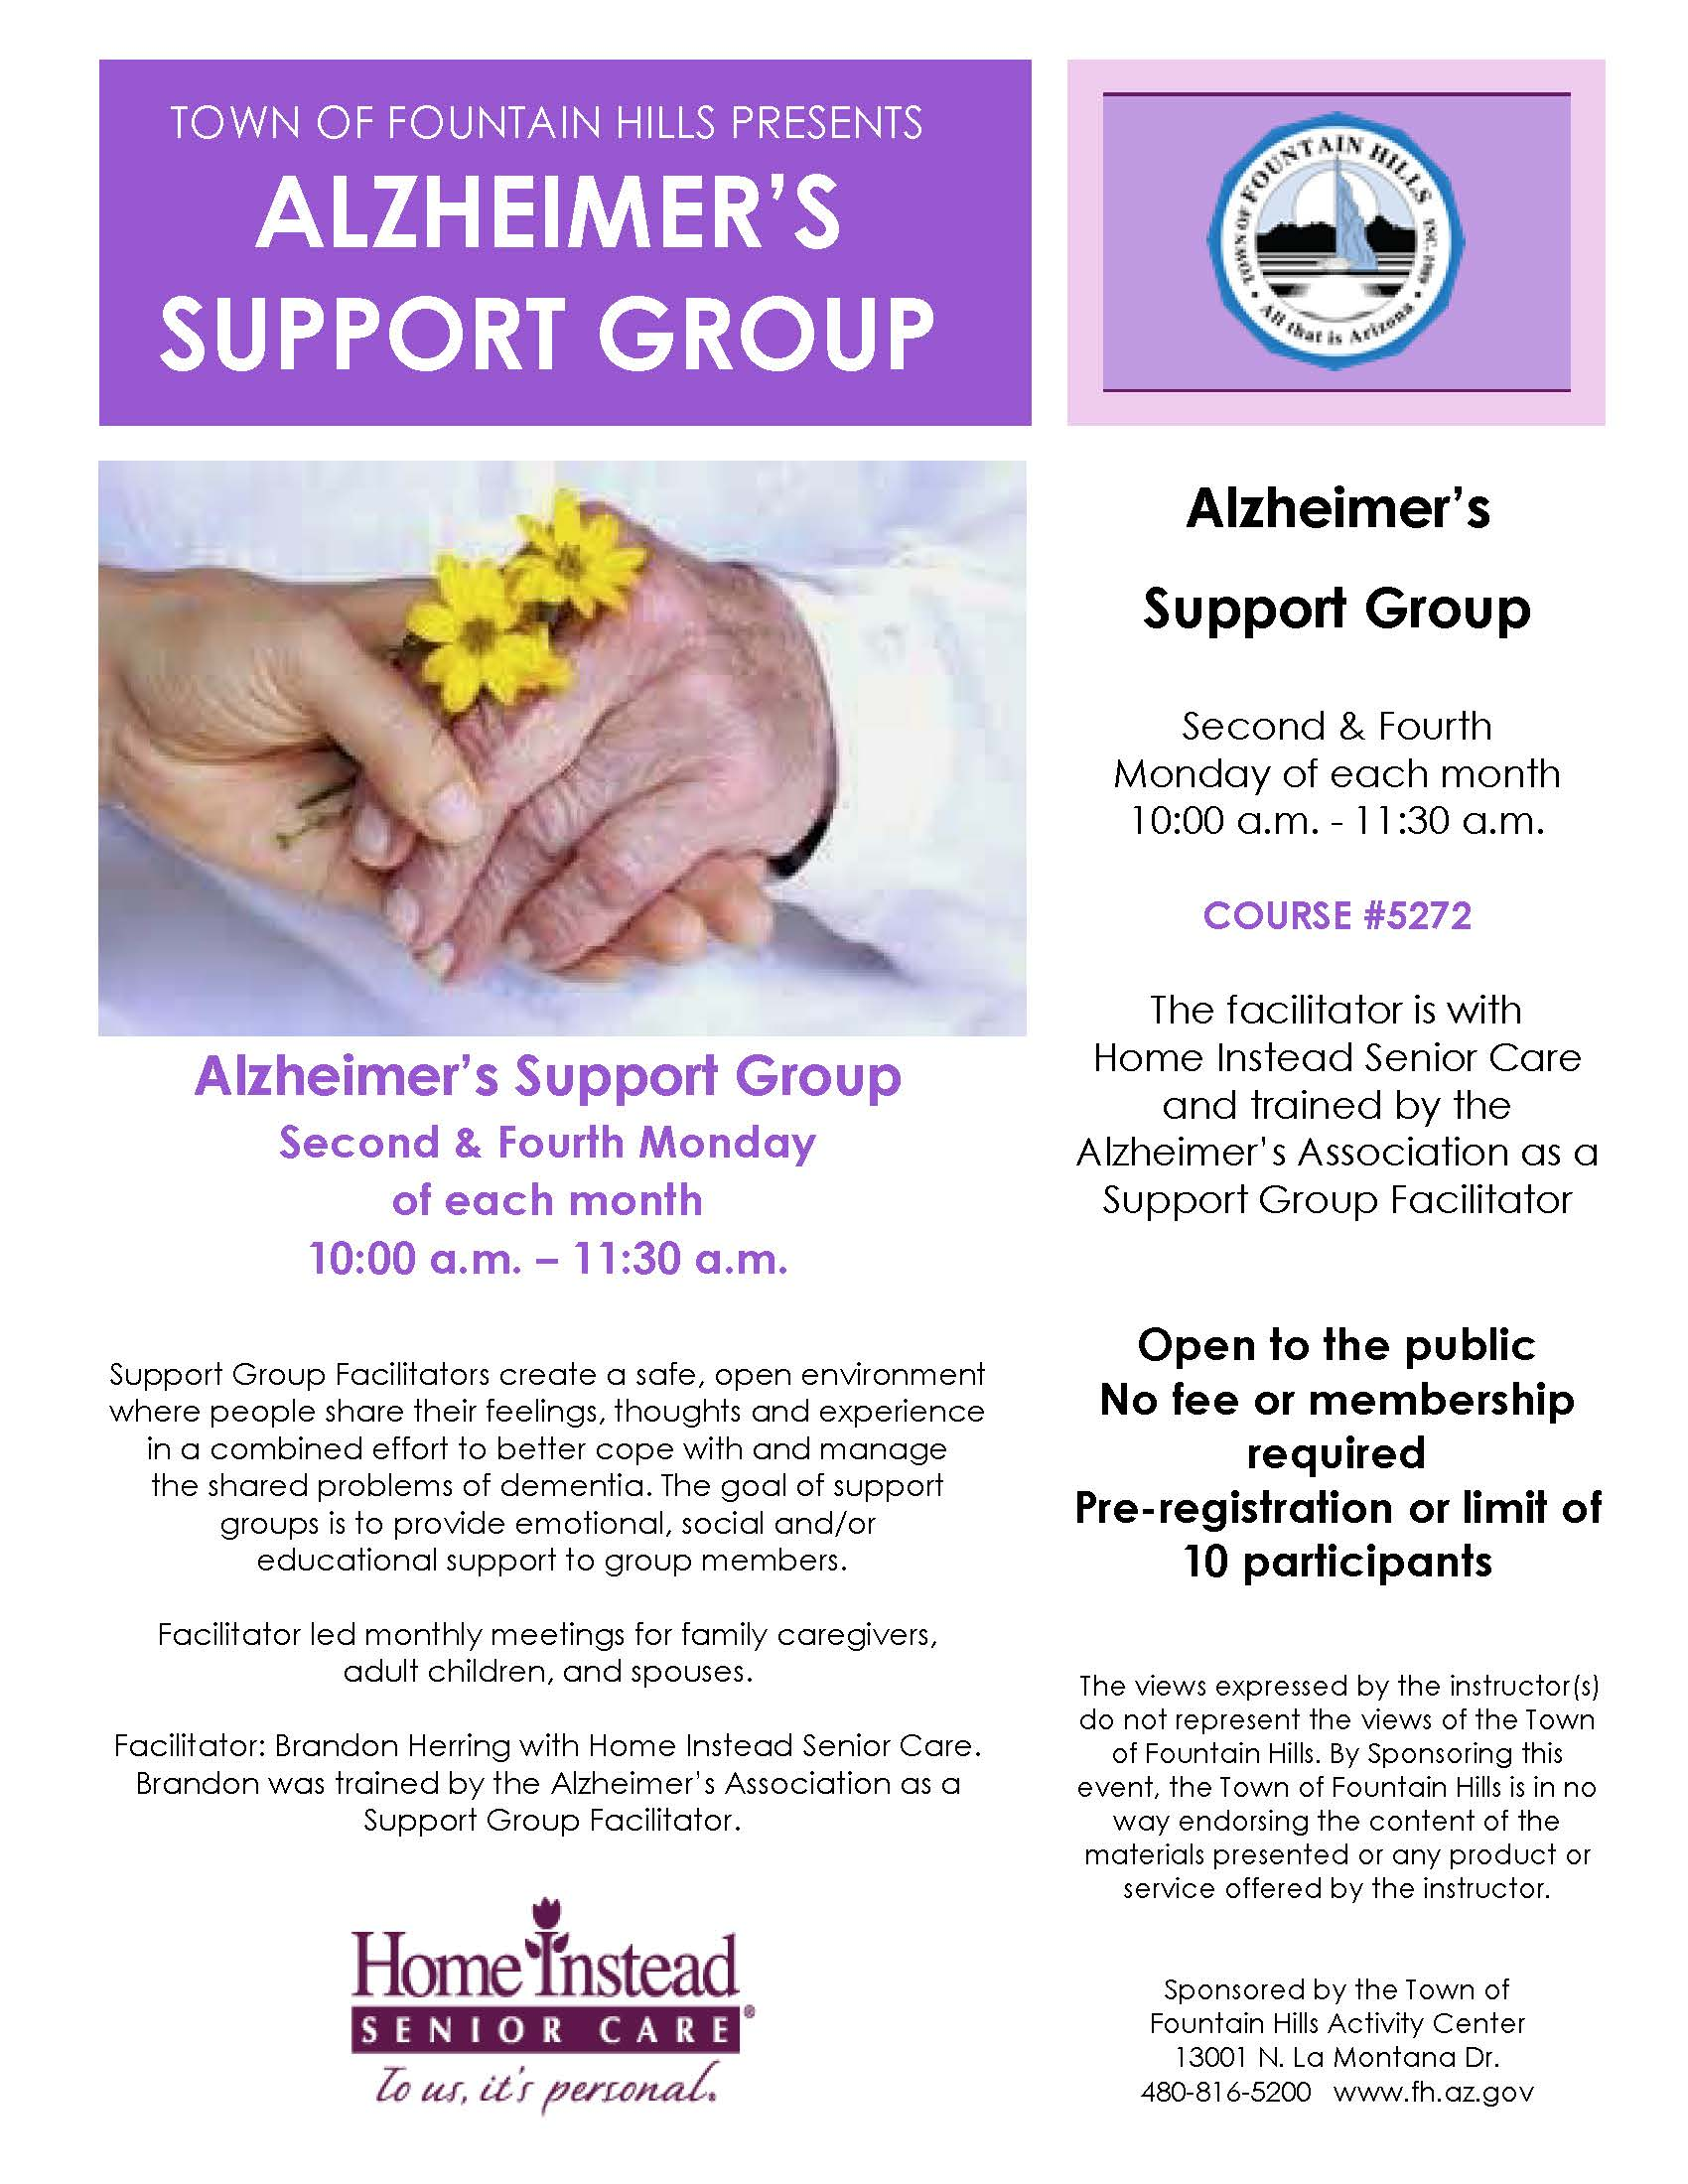 Alzheimers Support Group